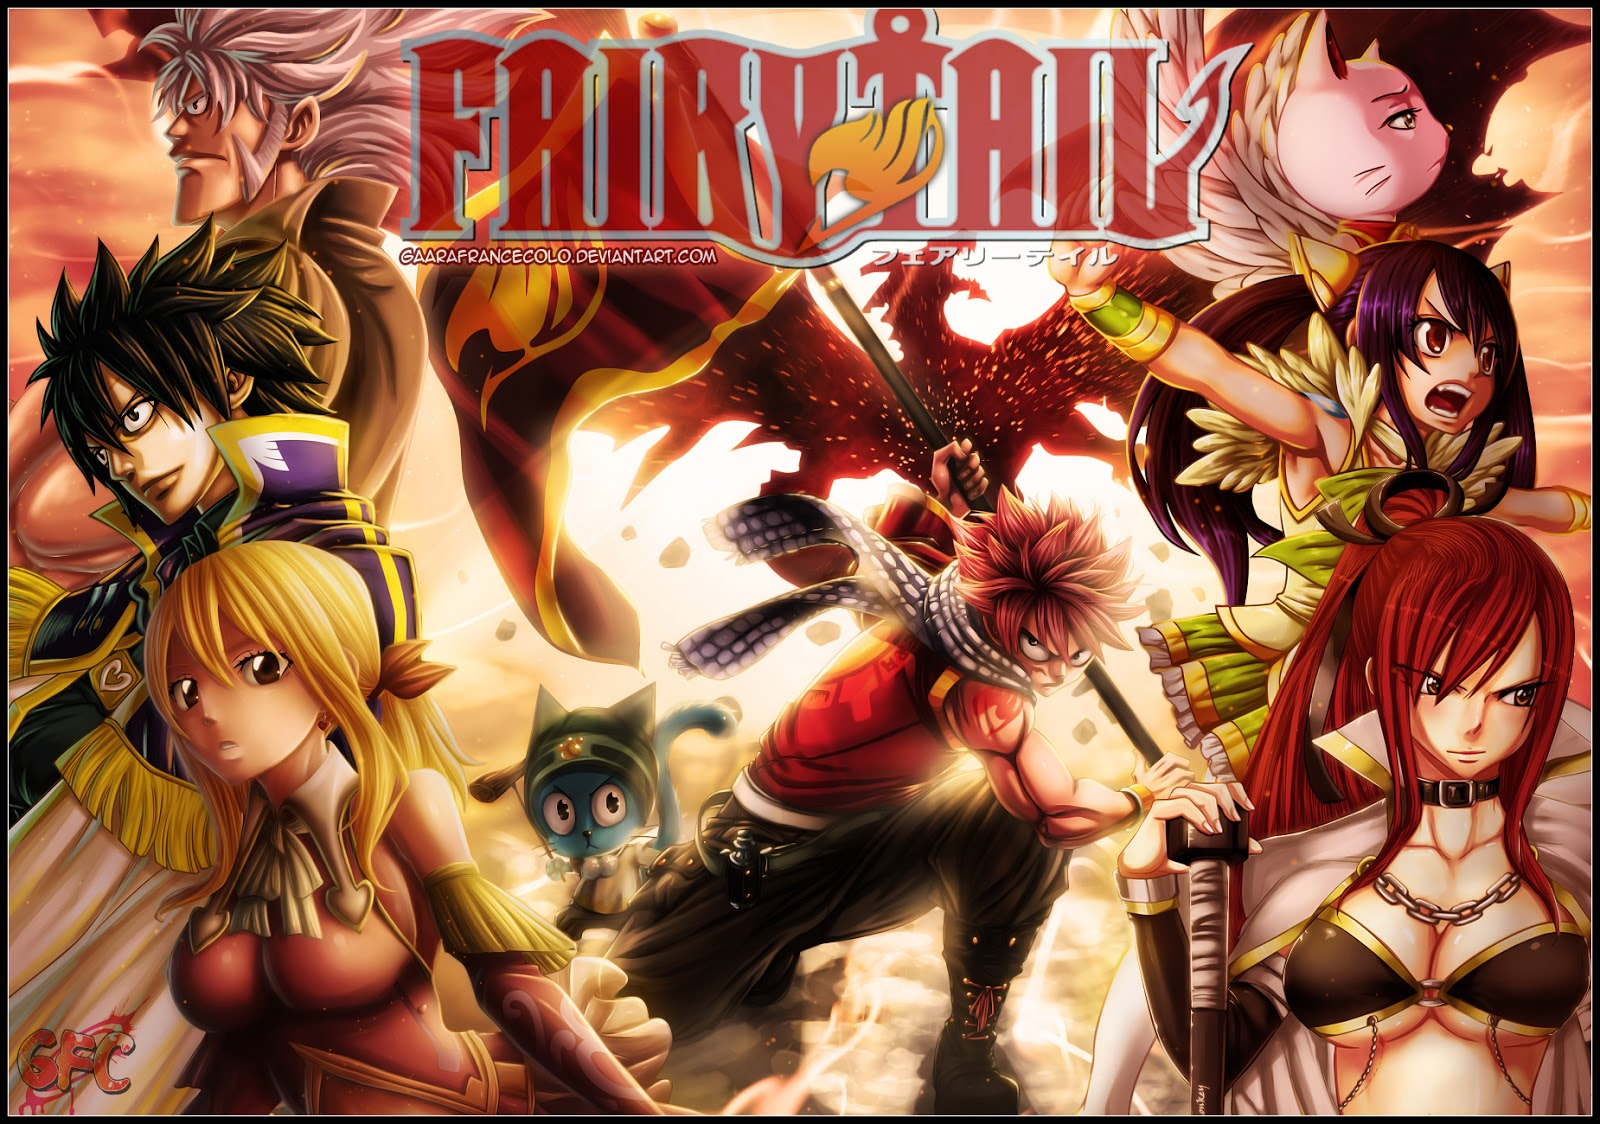 Fairy Tail 2015 Wallpaper Hd